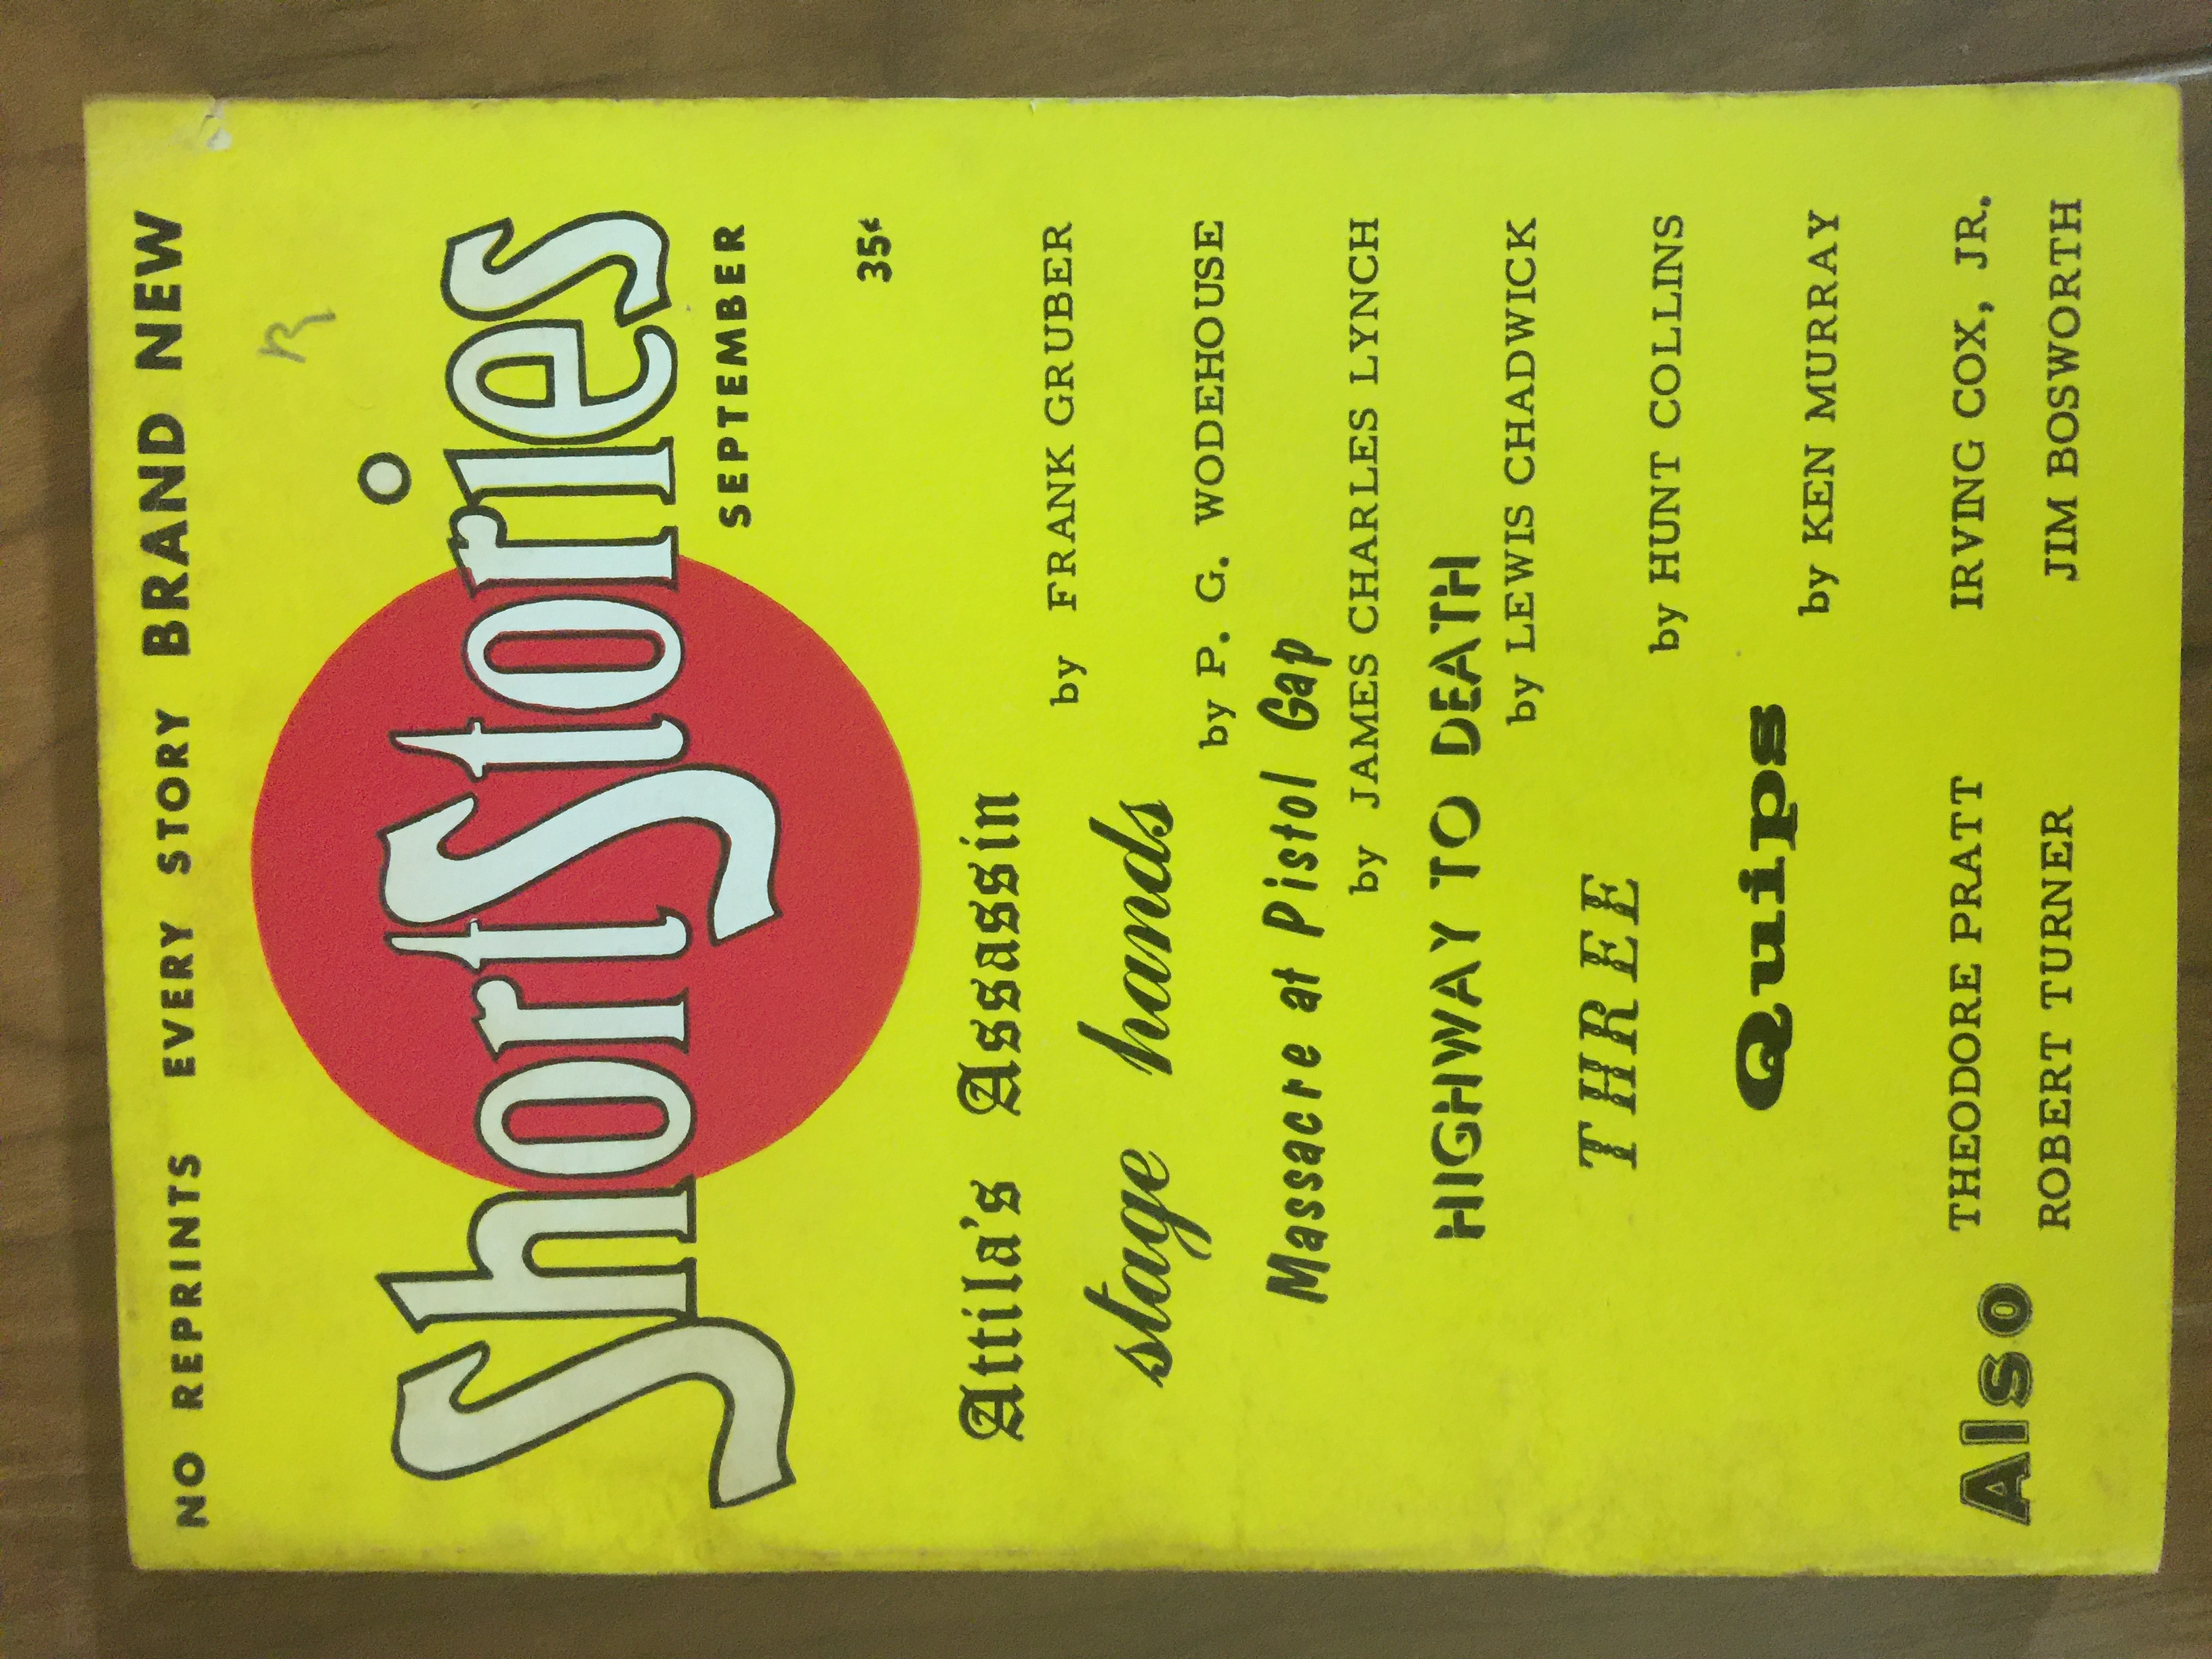 1956 Sep issue of Short Stories resuming after 2 year hiatus, no reprints, new editor M.D. Gregory